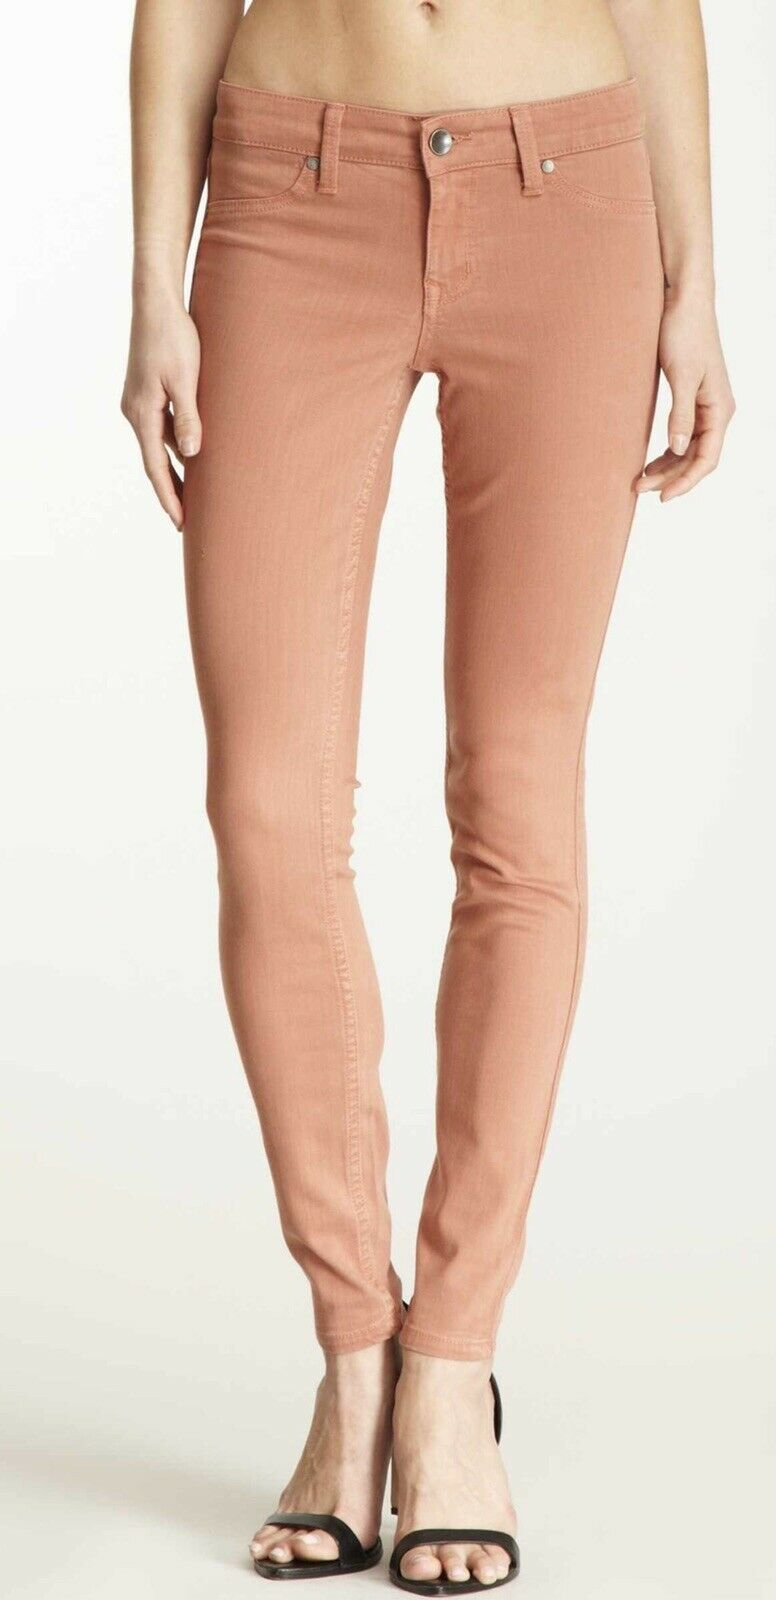 NWT LEVEL 99 Sz 25 JANICE MID RISE ULTRA SKINNY JEAN NUDIE RUST TENCEL